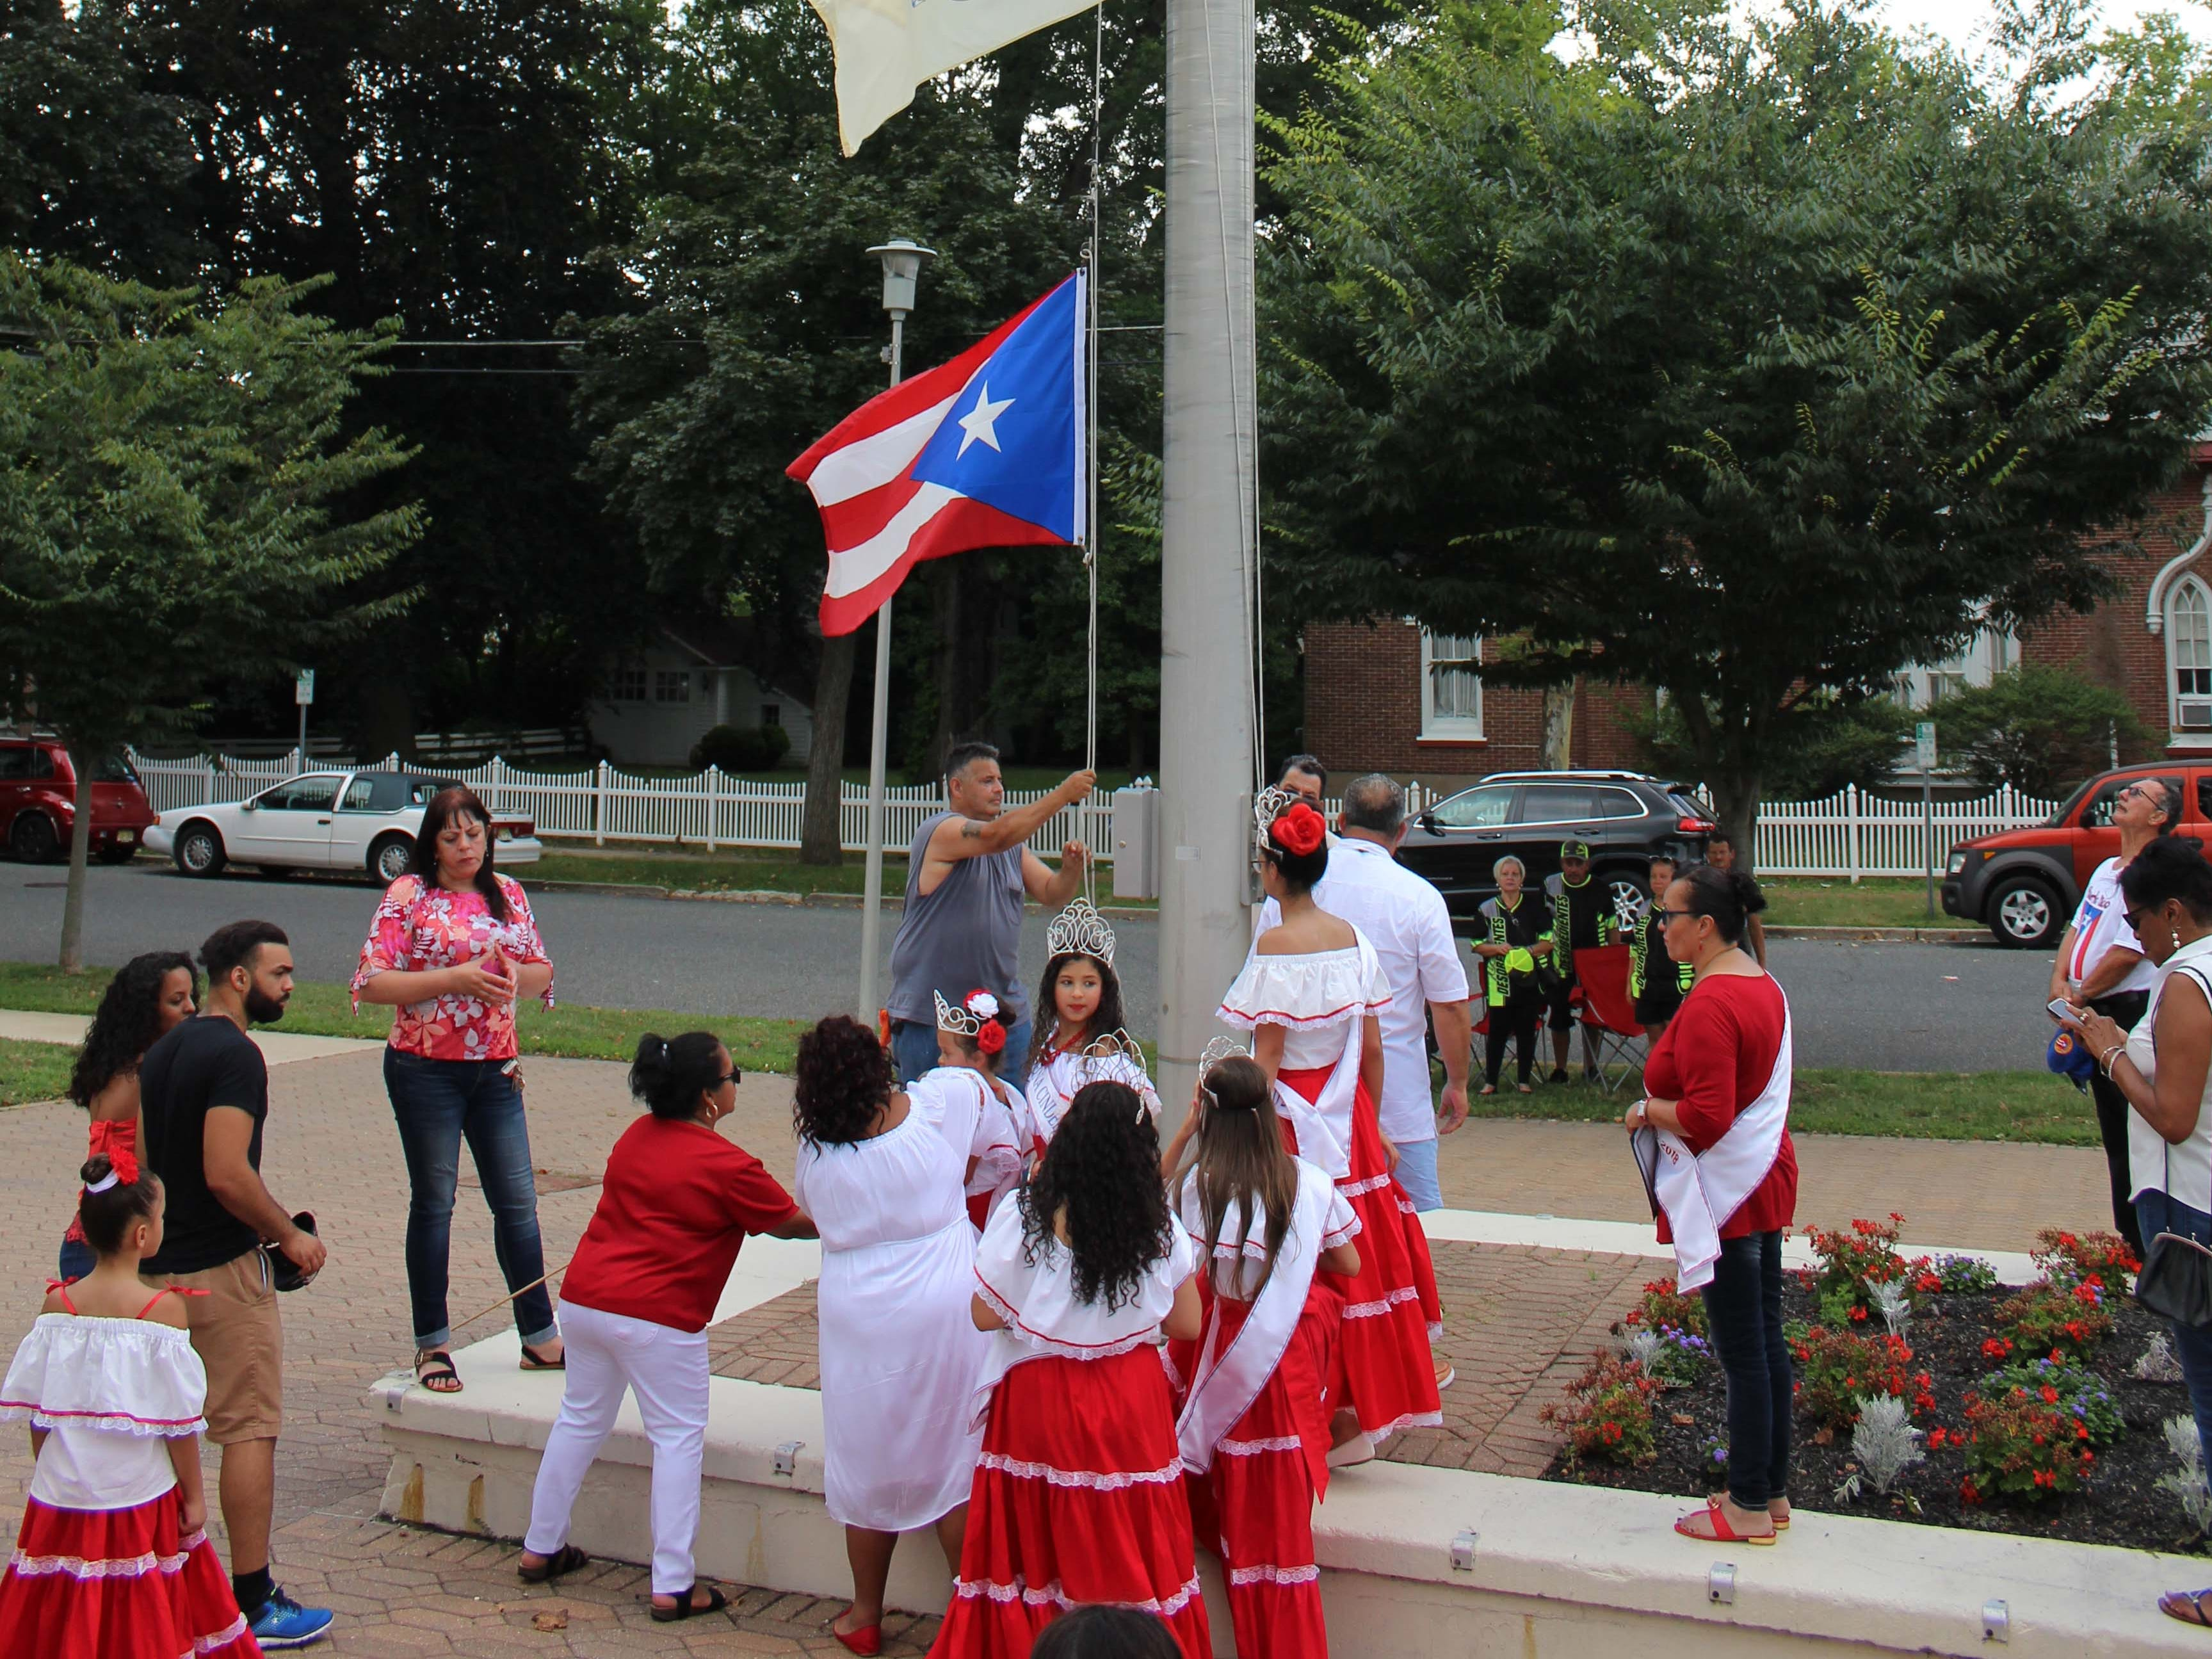 The Puerto Rican flag was raised on Sunday, July 22, outside of Vineland City Hall, marking the beginning of the week-long Puerto Rican Festival. The day's ceremony was dedicated to victims of Hurricane Maria.